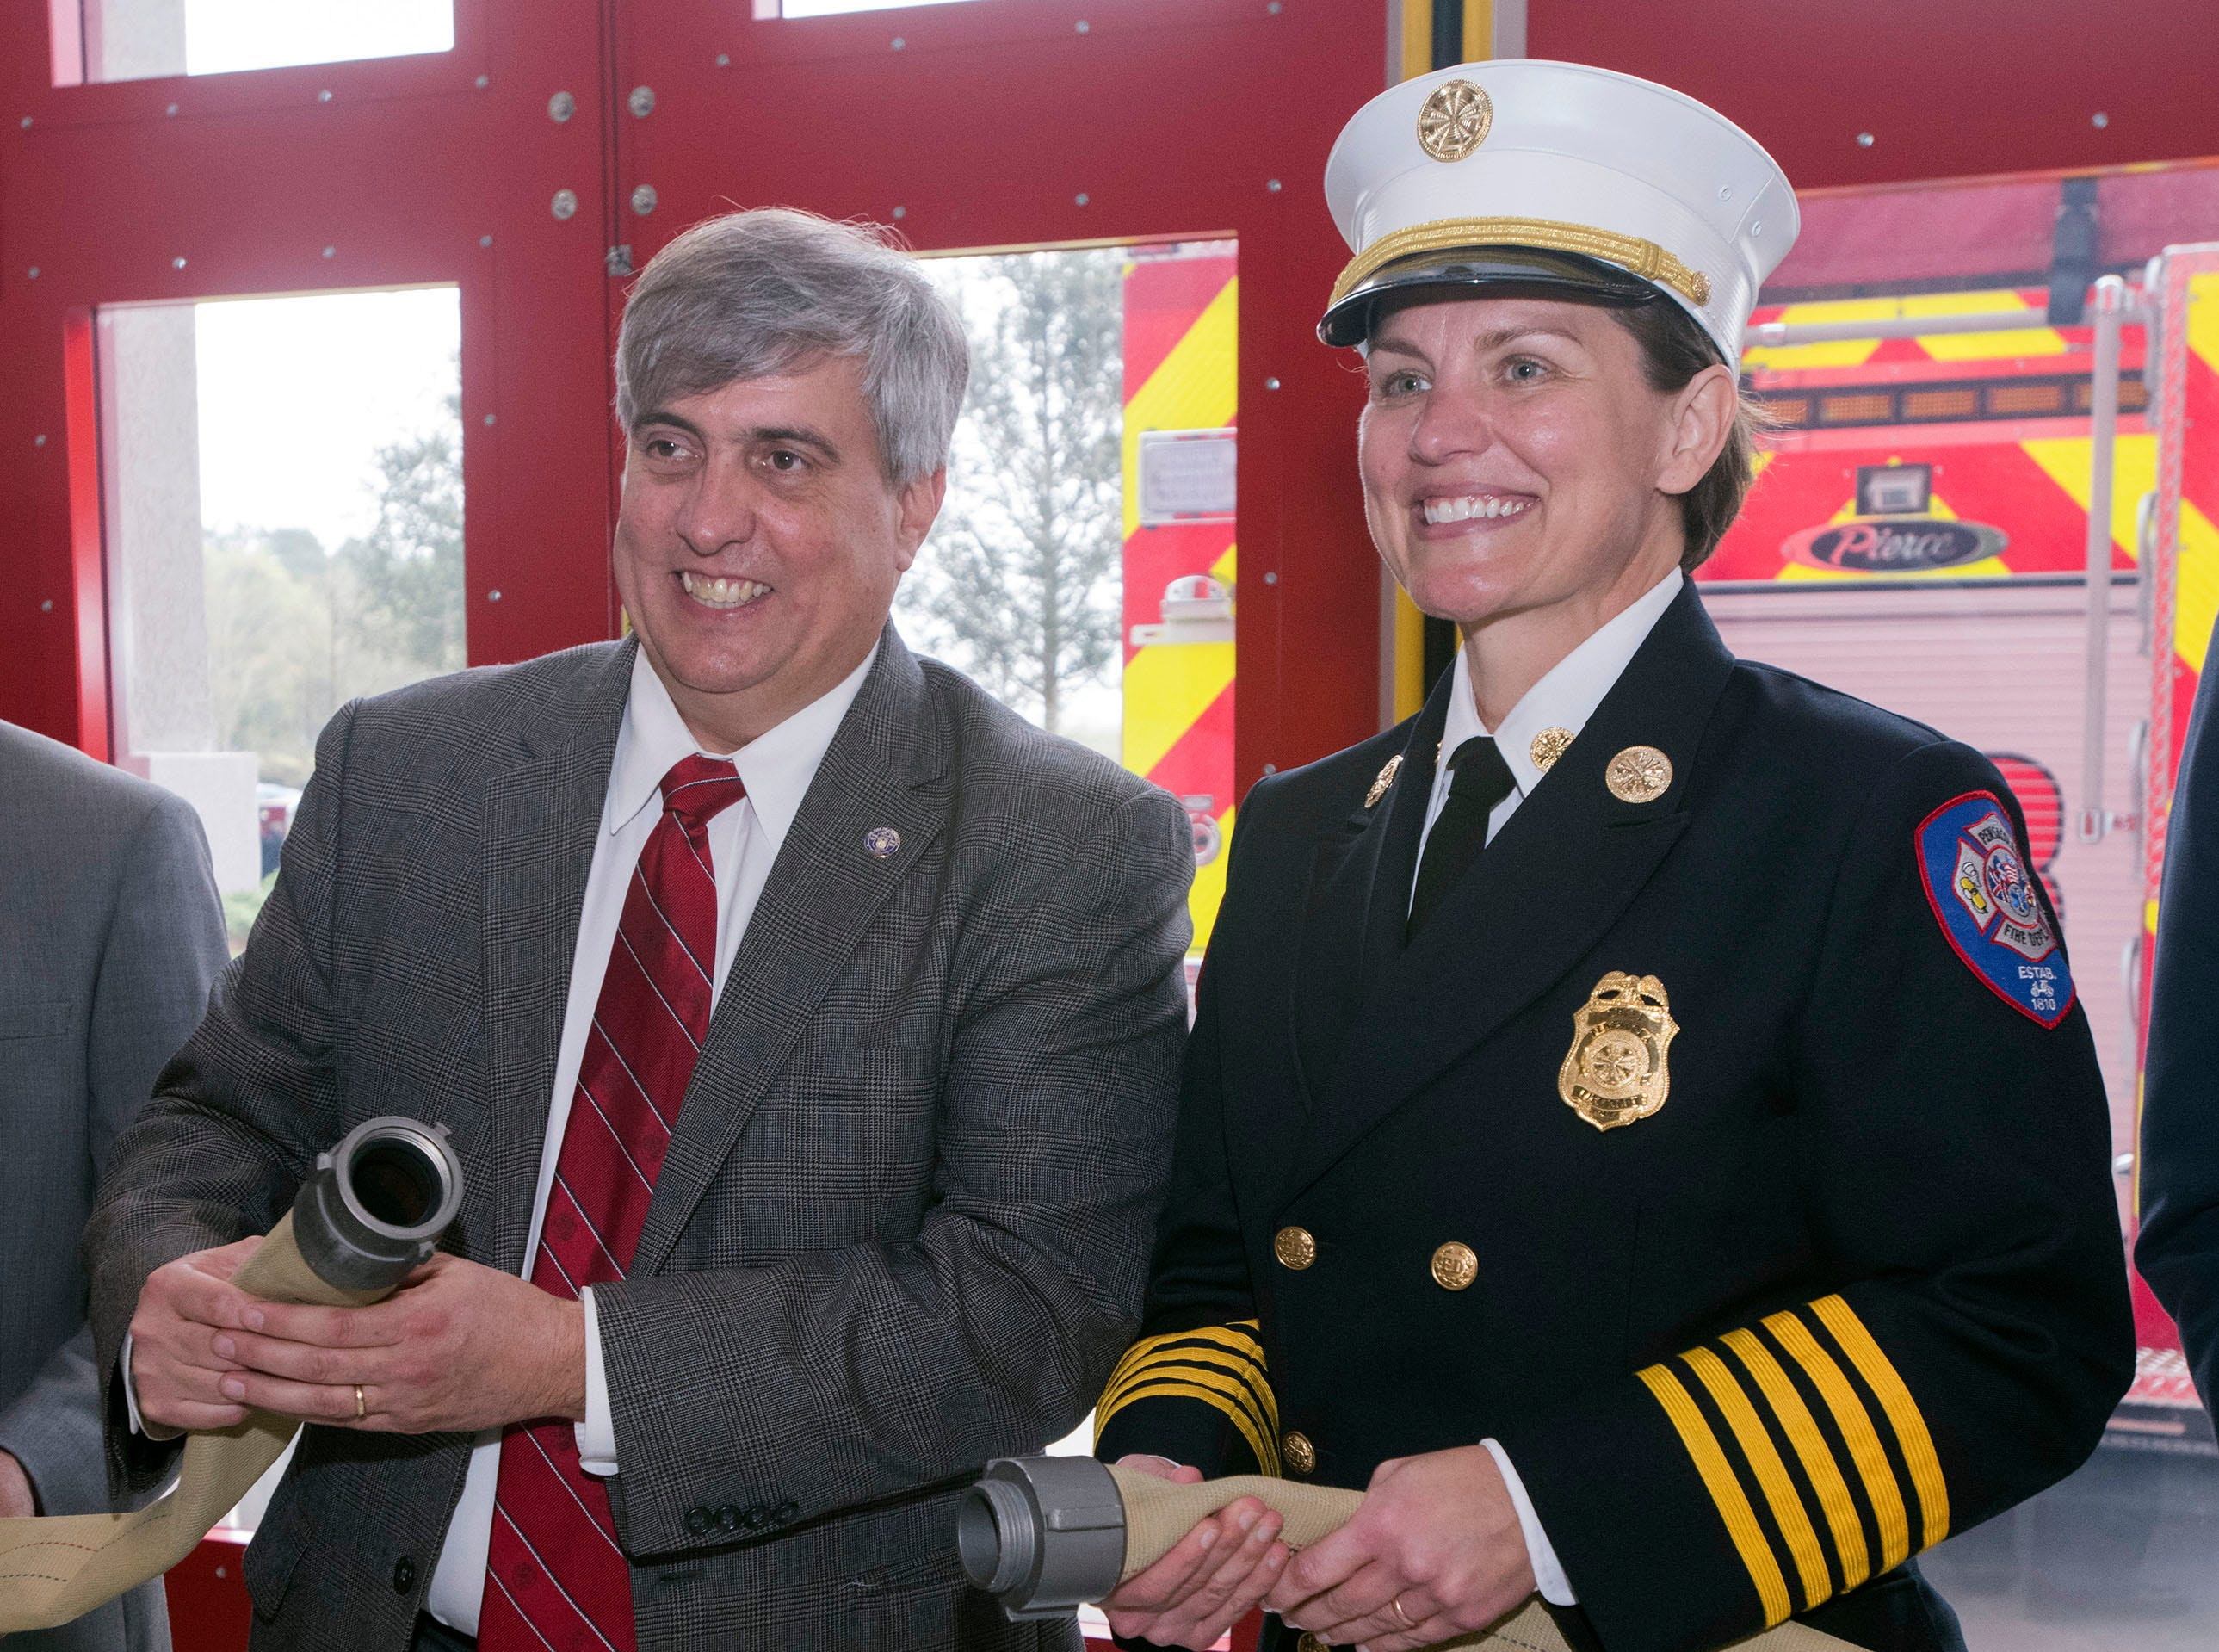 Mayor Grover Robinson and Fire Chief Ginny Cranor take part in the uncoupling of the hose ceremony during a dedication for the new Pensacola Fire Sation Three off Summit Blvd on Thursday, March 14, 2019. The new building, dedicated Thursday, replaces the current station built in 1969 — money from the local option sales tax paid for the project.